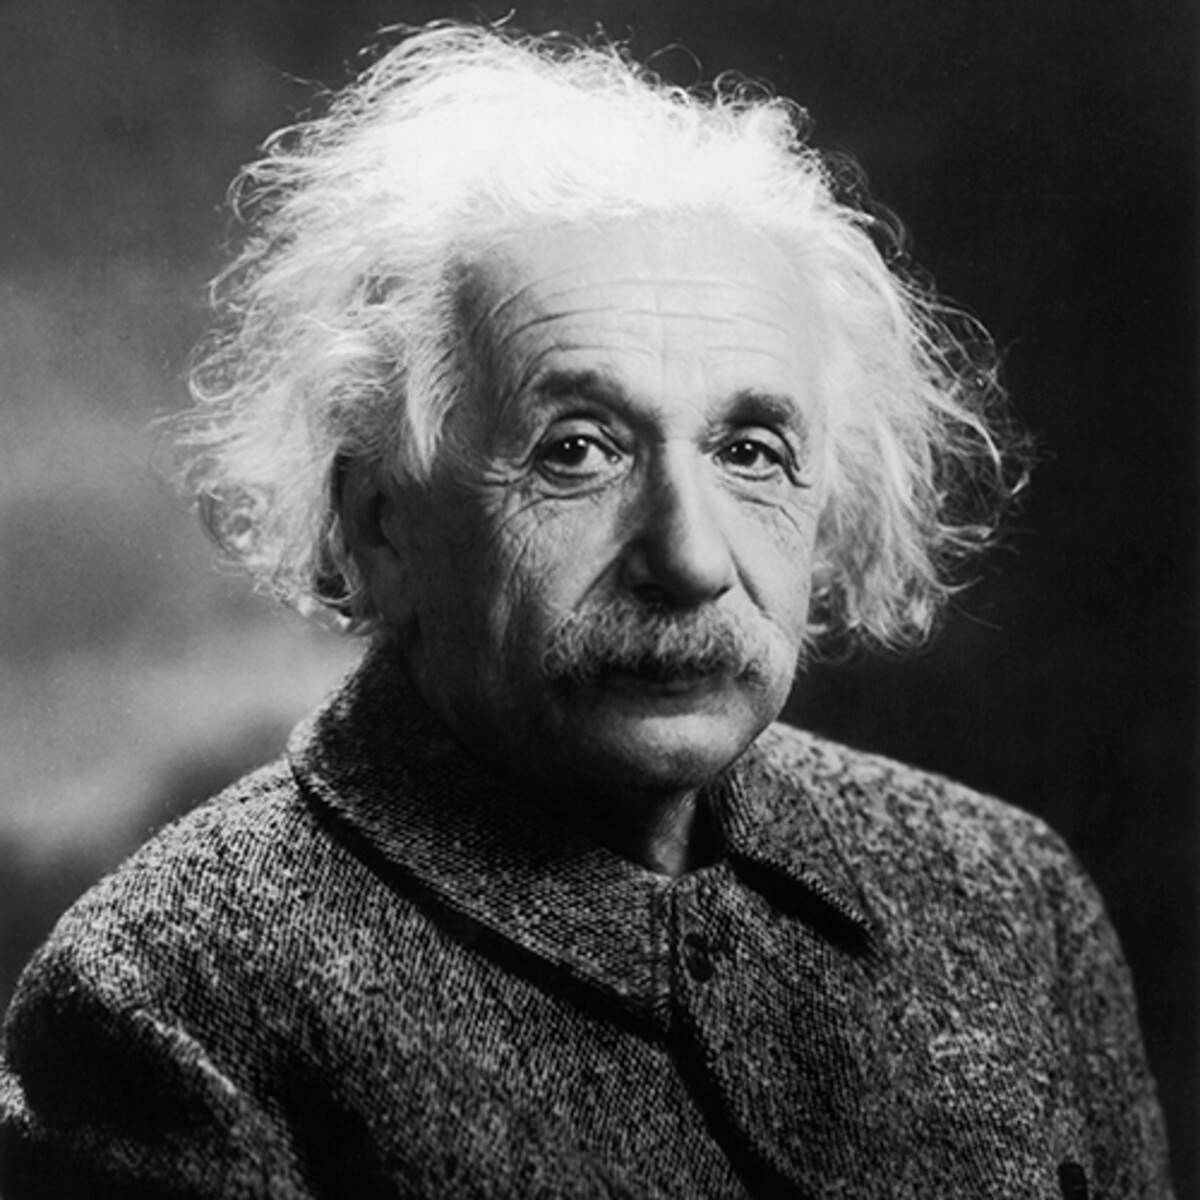 Previously unknown letter reveals Einstein's thinking on bees, birds and physics